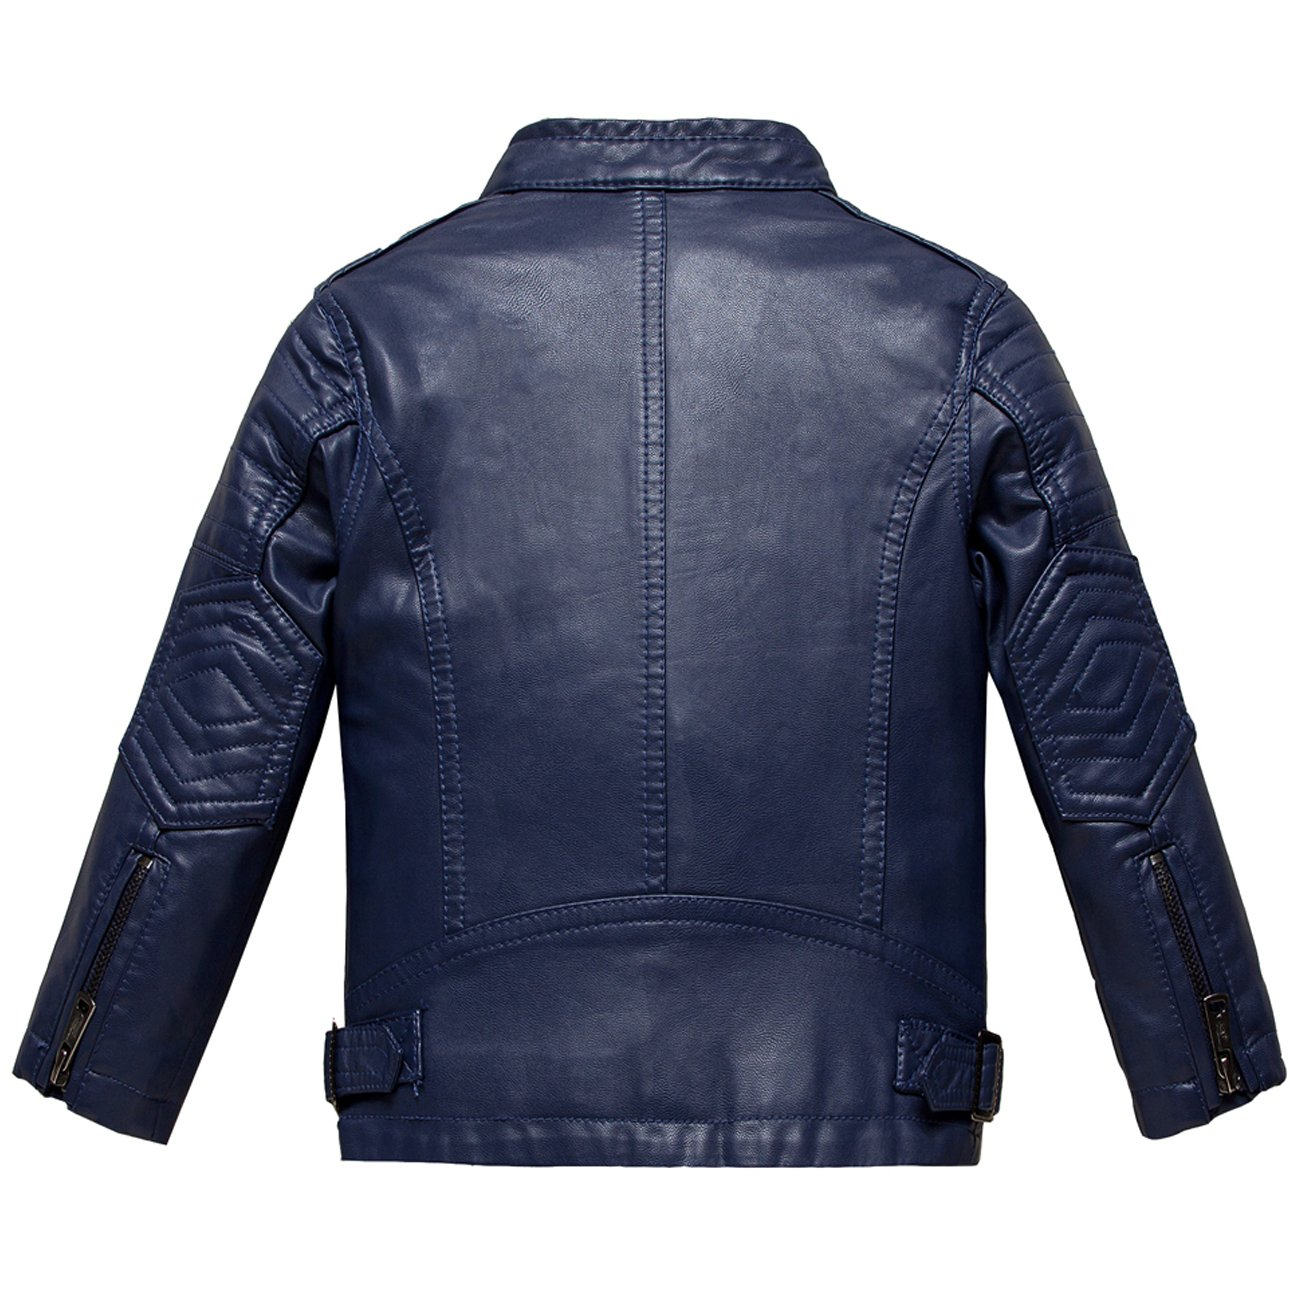 Budermmy Boys Atletic Faux Leather Moto Zipper Jackets Blue Size 3t